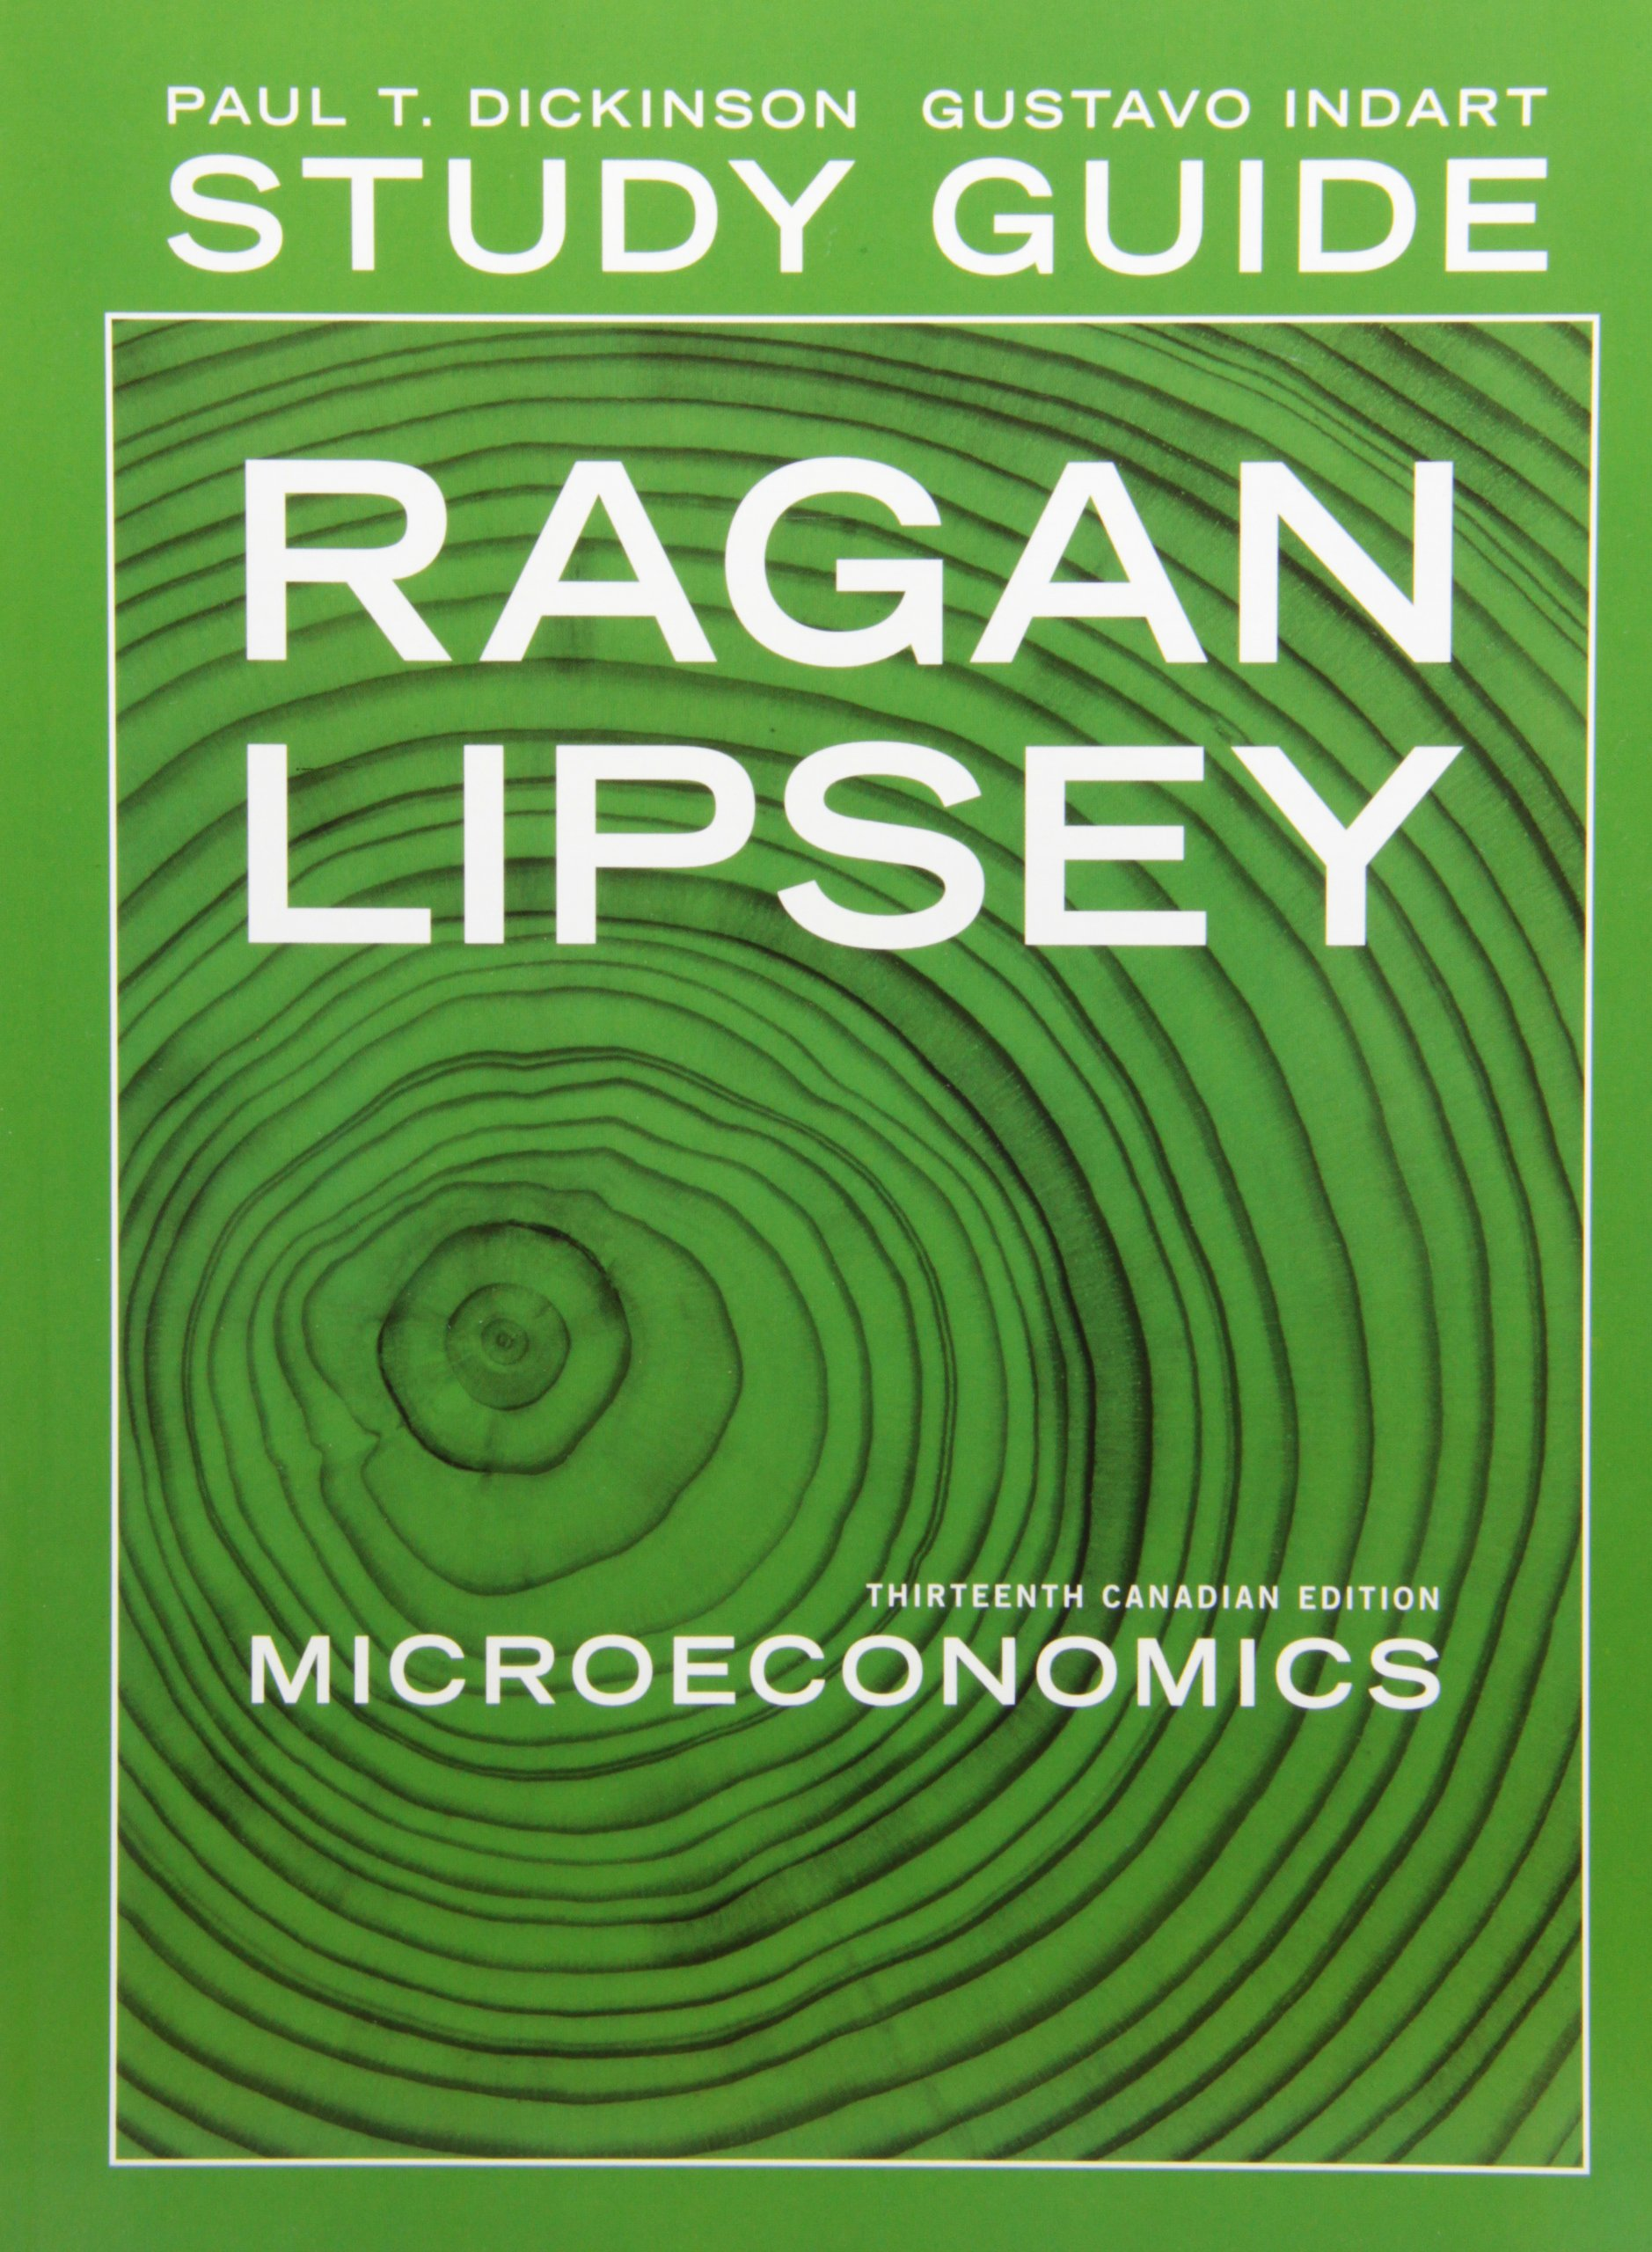 Study Guide for Microeconomics, Thirteenth Canadian Edition: Christopher  Ragan, Richard G Lipsey: 9780321685230: Books - Amazon.ca